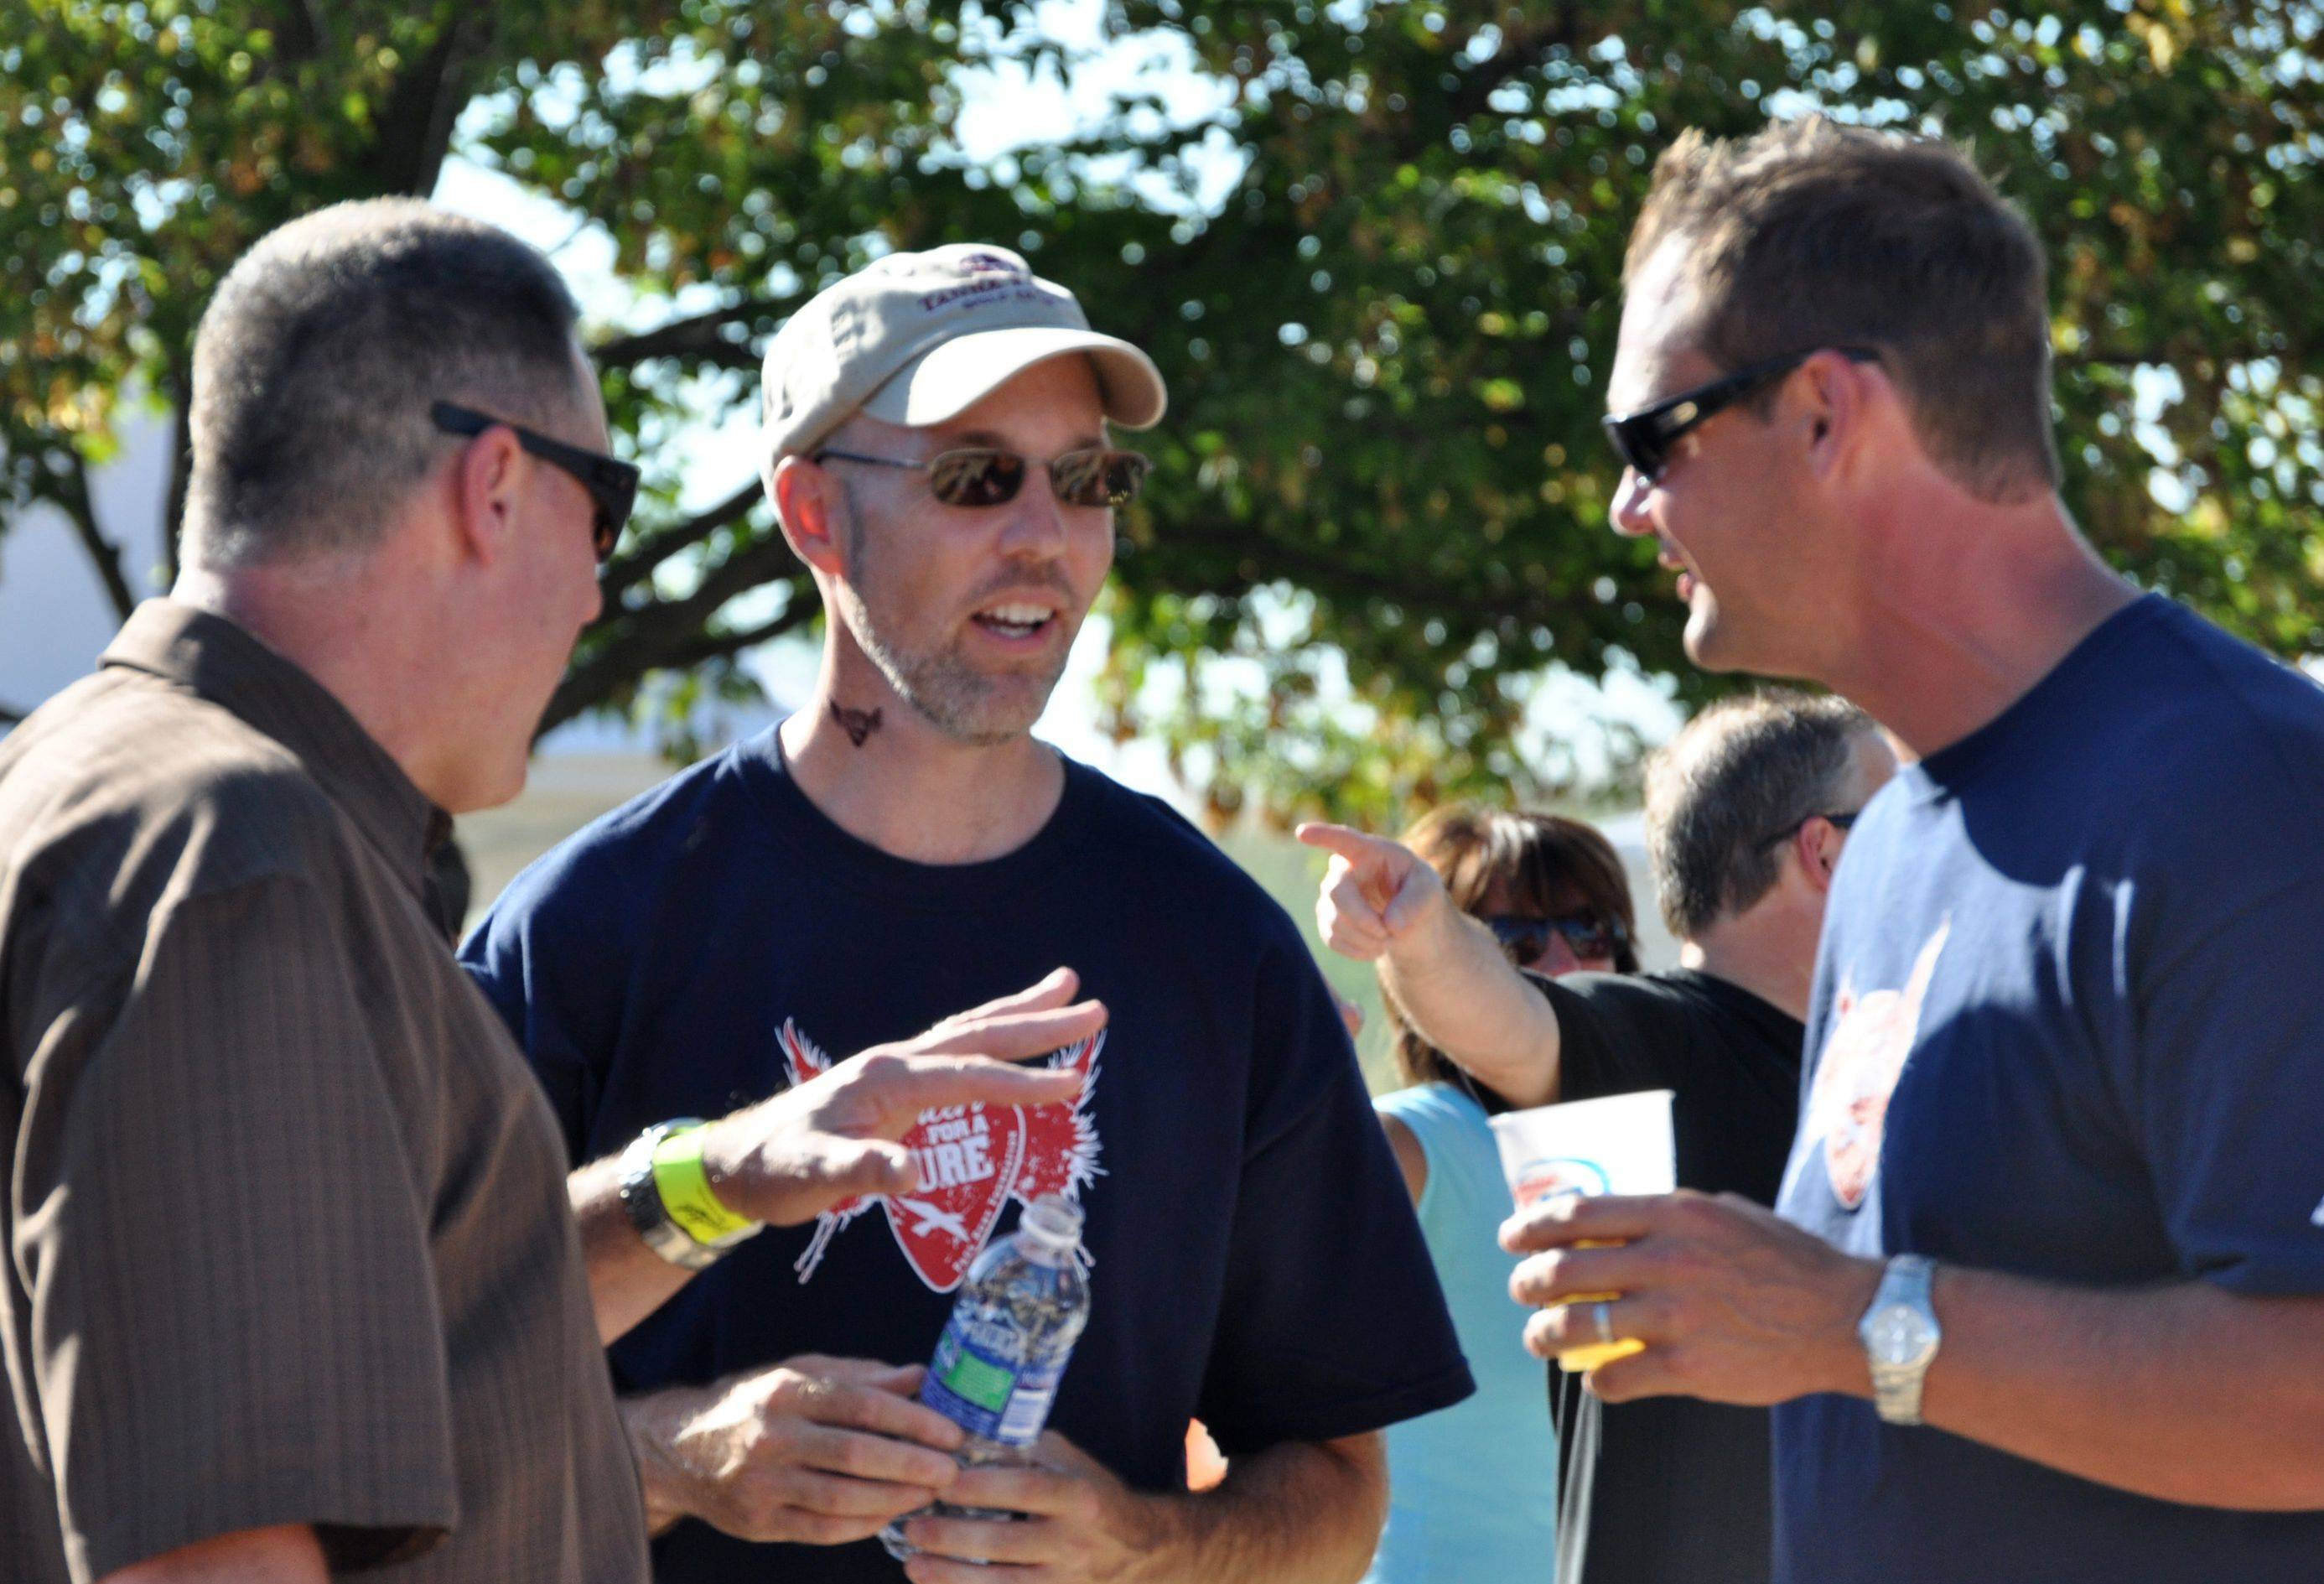 Paul Ruby, center, talks to guests at last year's Concert for a Cure benefit for Parkinson's disease. This year's fundraiser for the Paul Ruby Foundation starts at 3 p.m. Aug. 27 at Tanna Farms, 39W808 Hughes Road, Geneva.